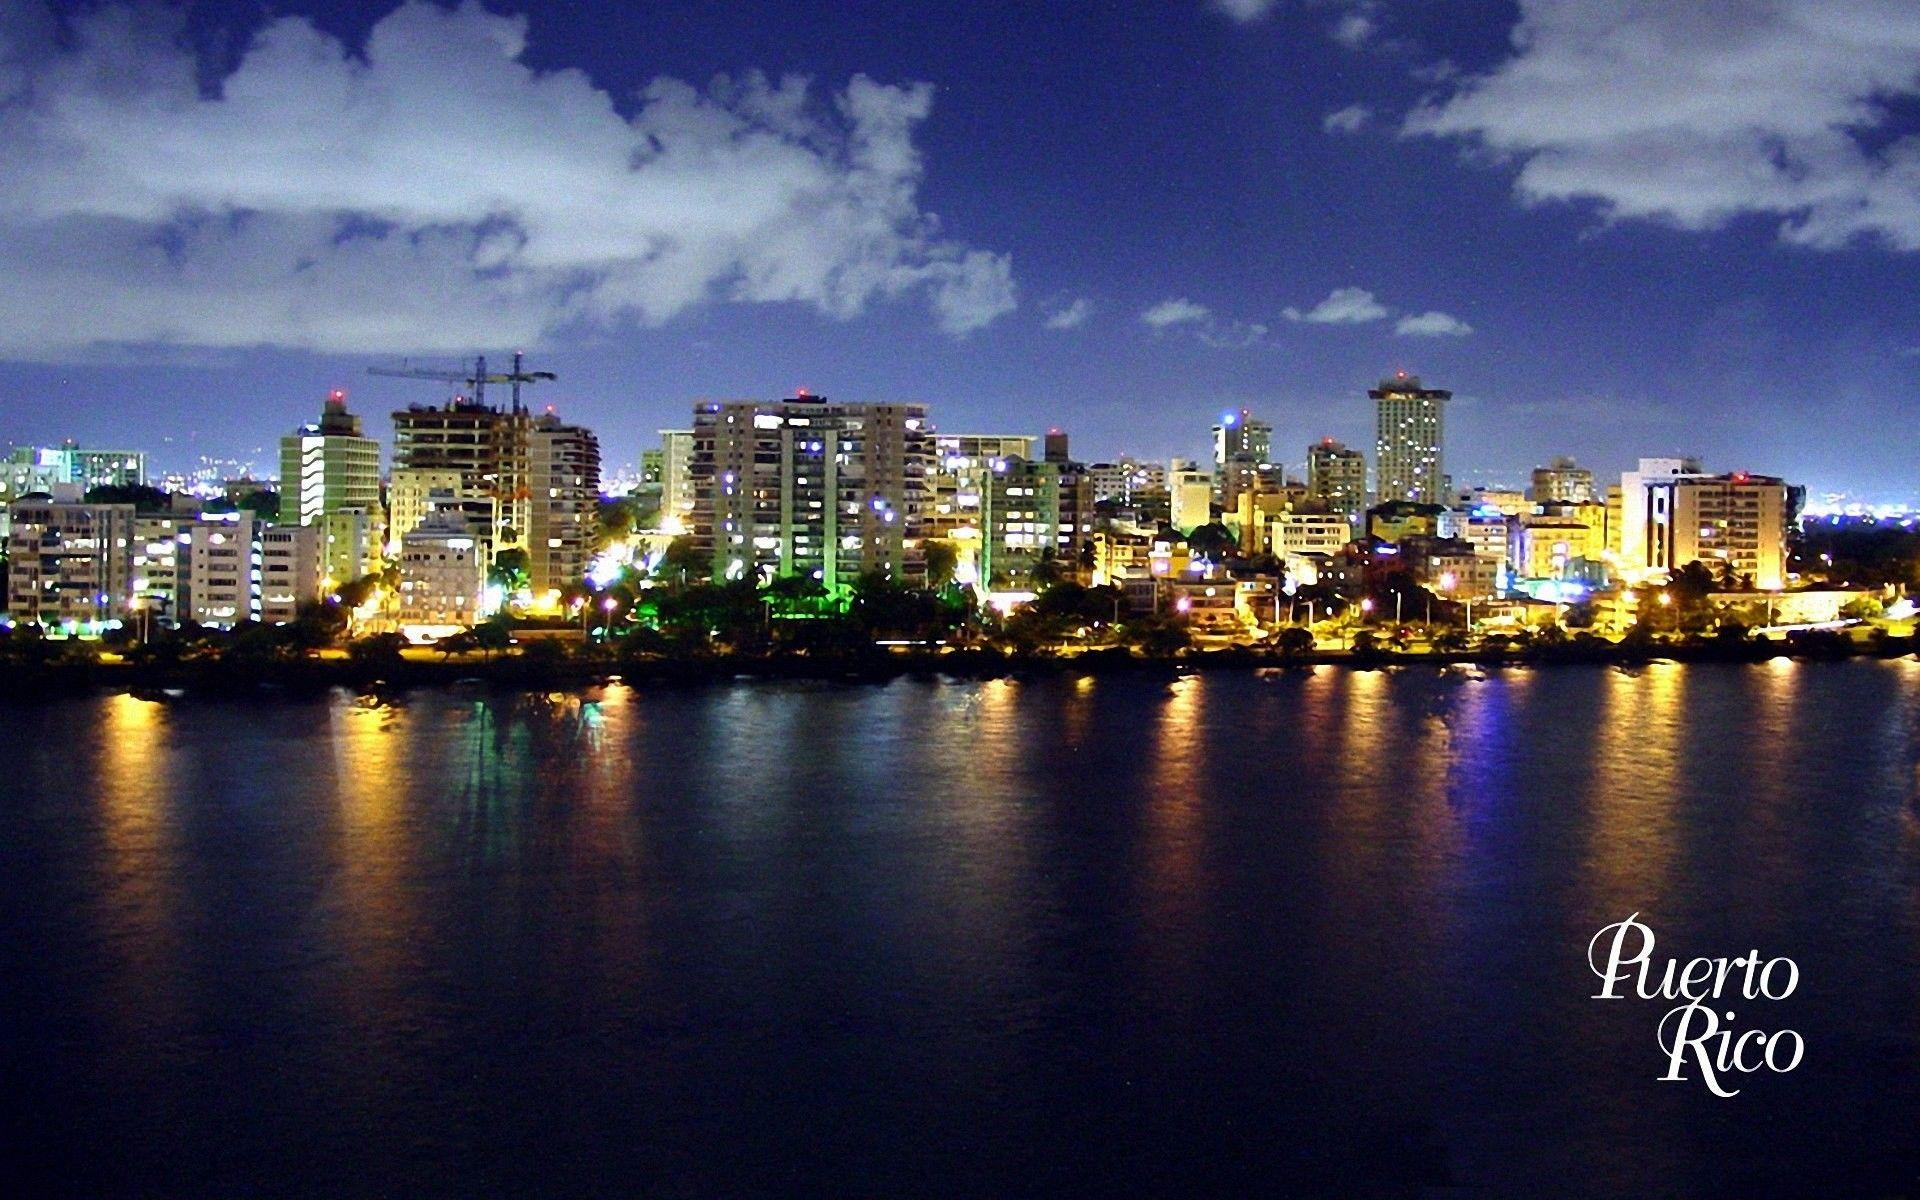 Puerto Rico Wallpapers Free